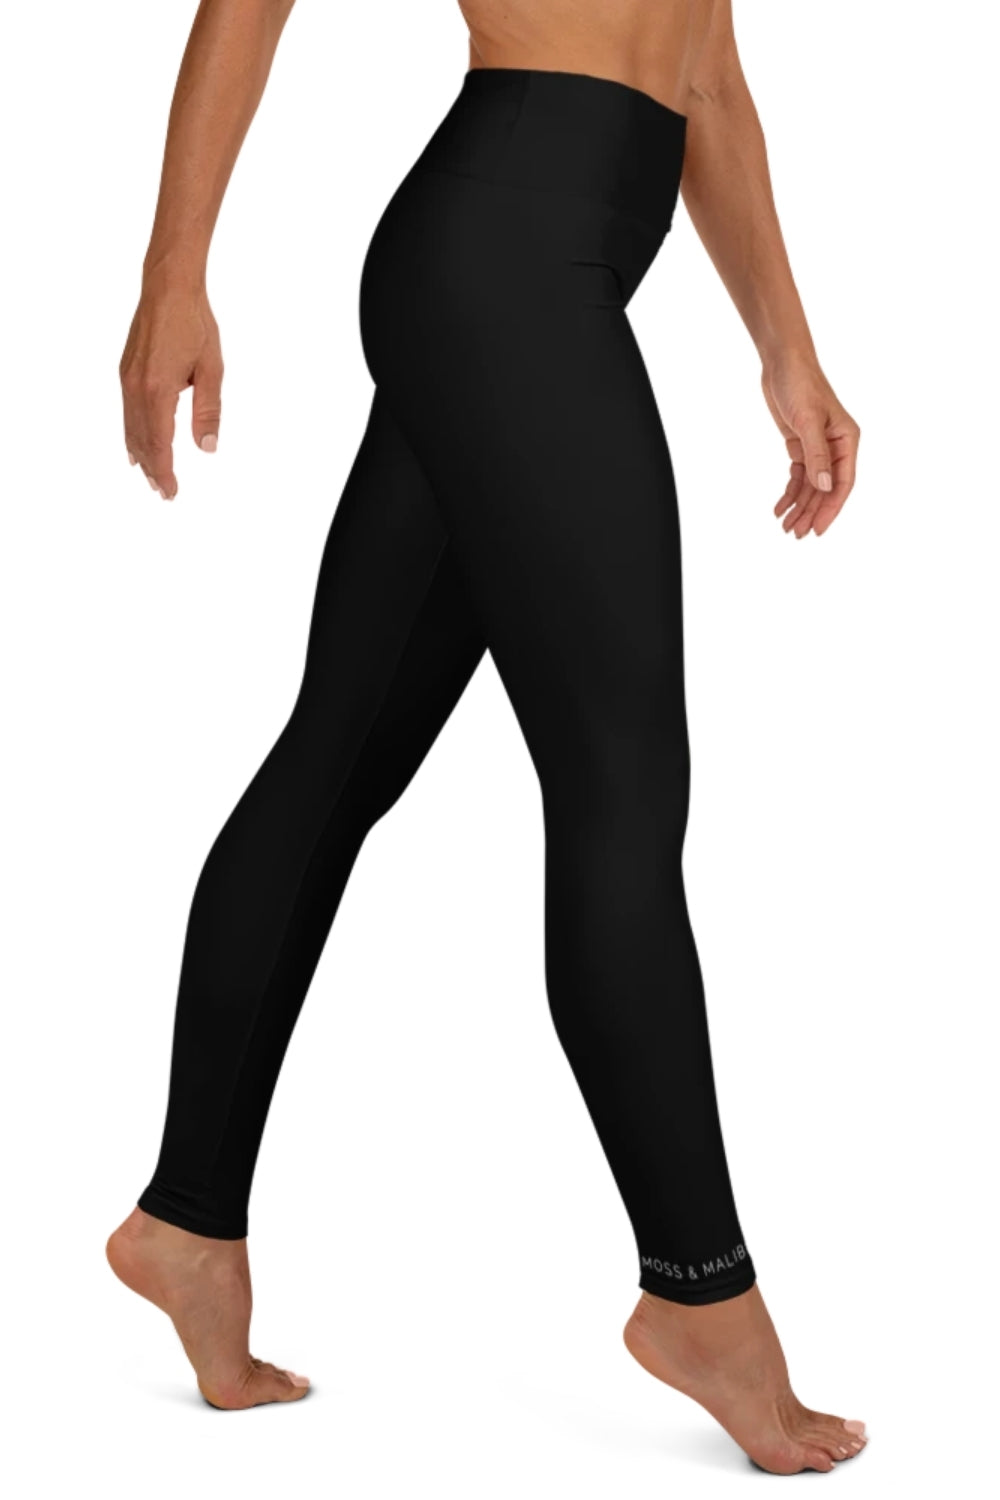 Essentials Black Yoga Leggings